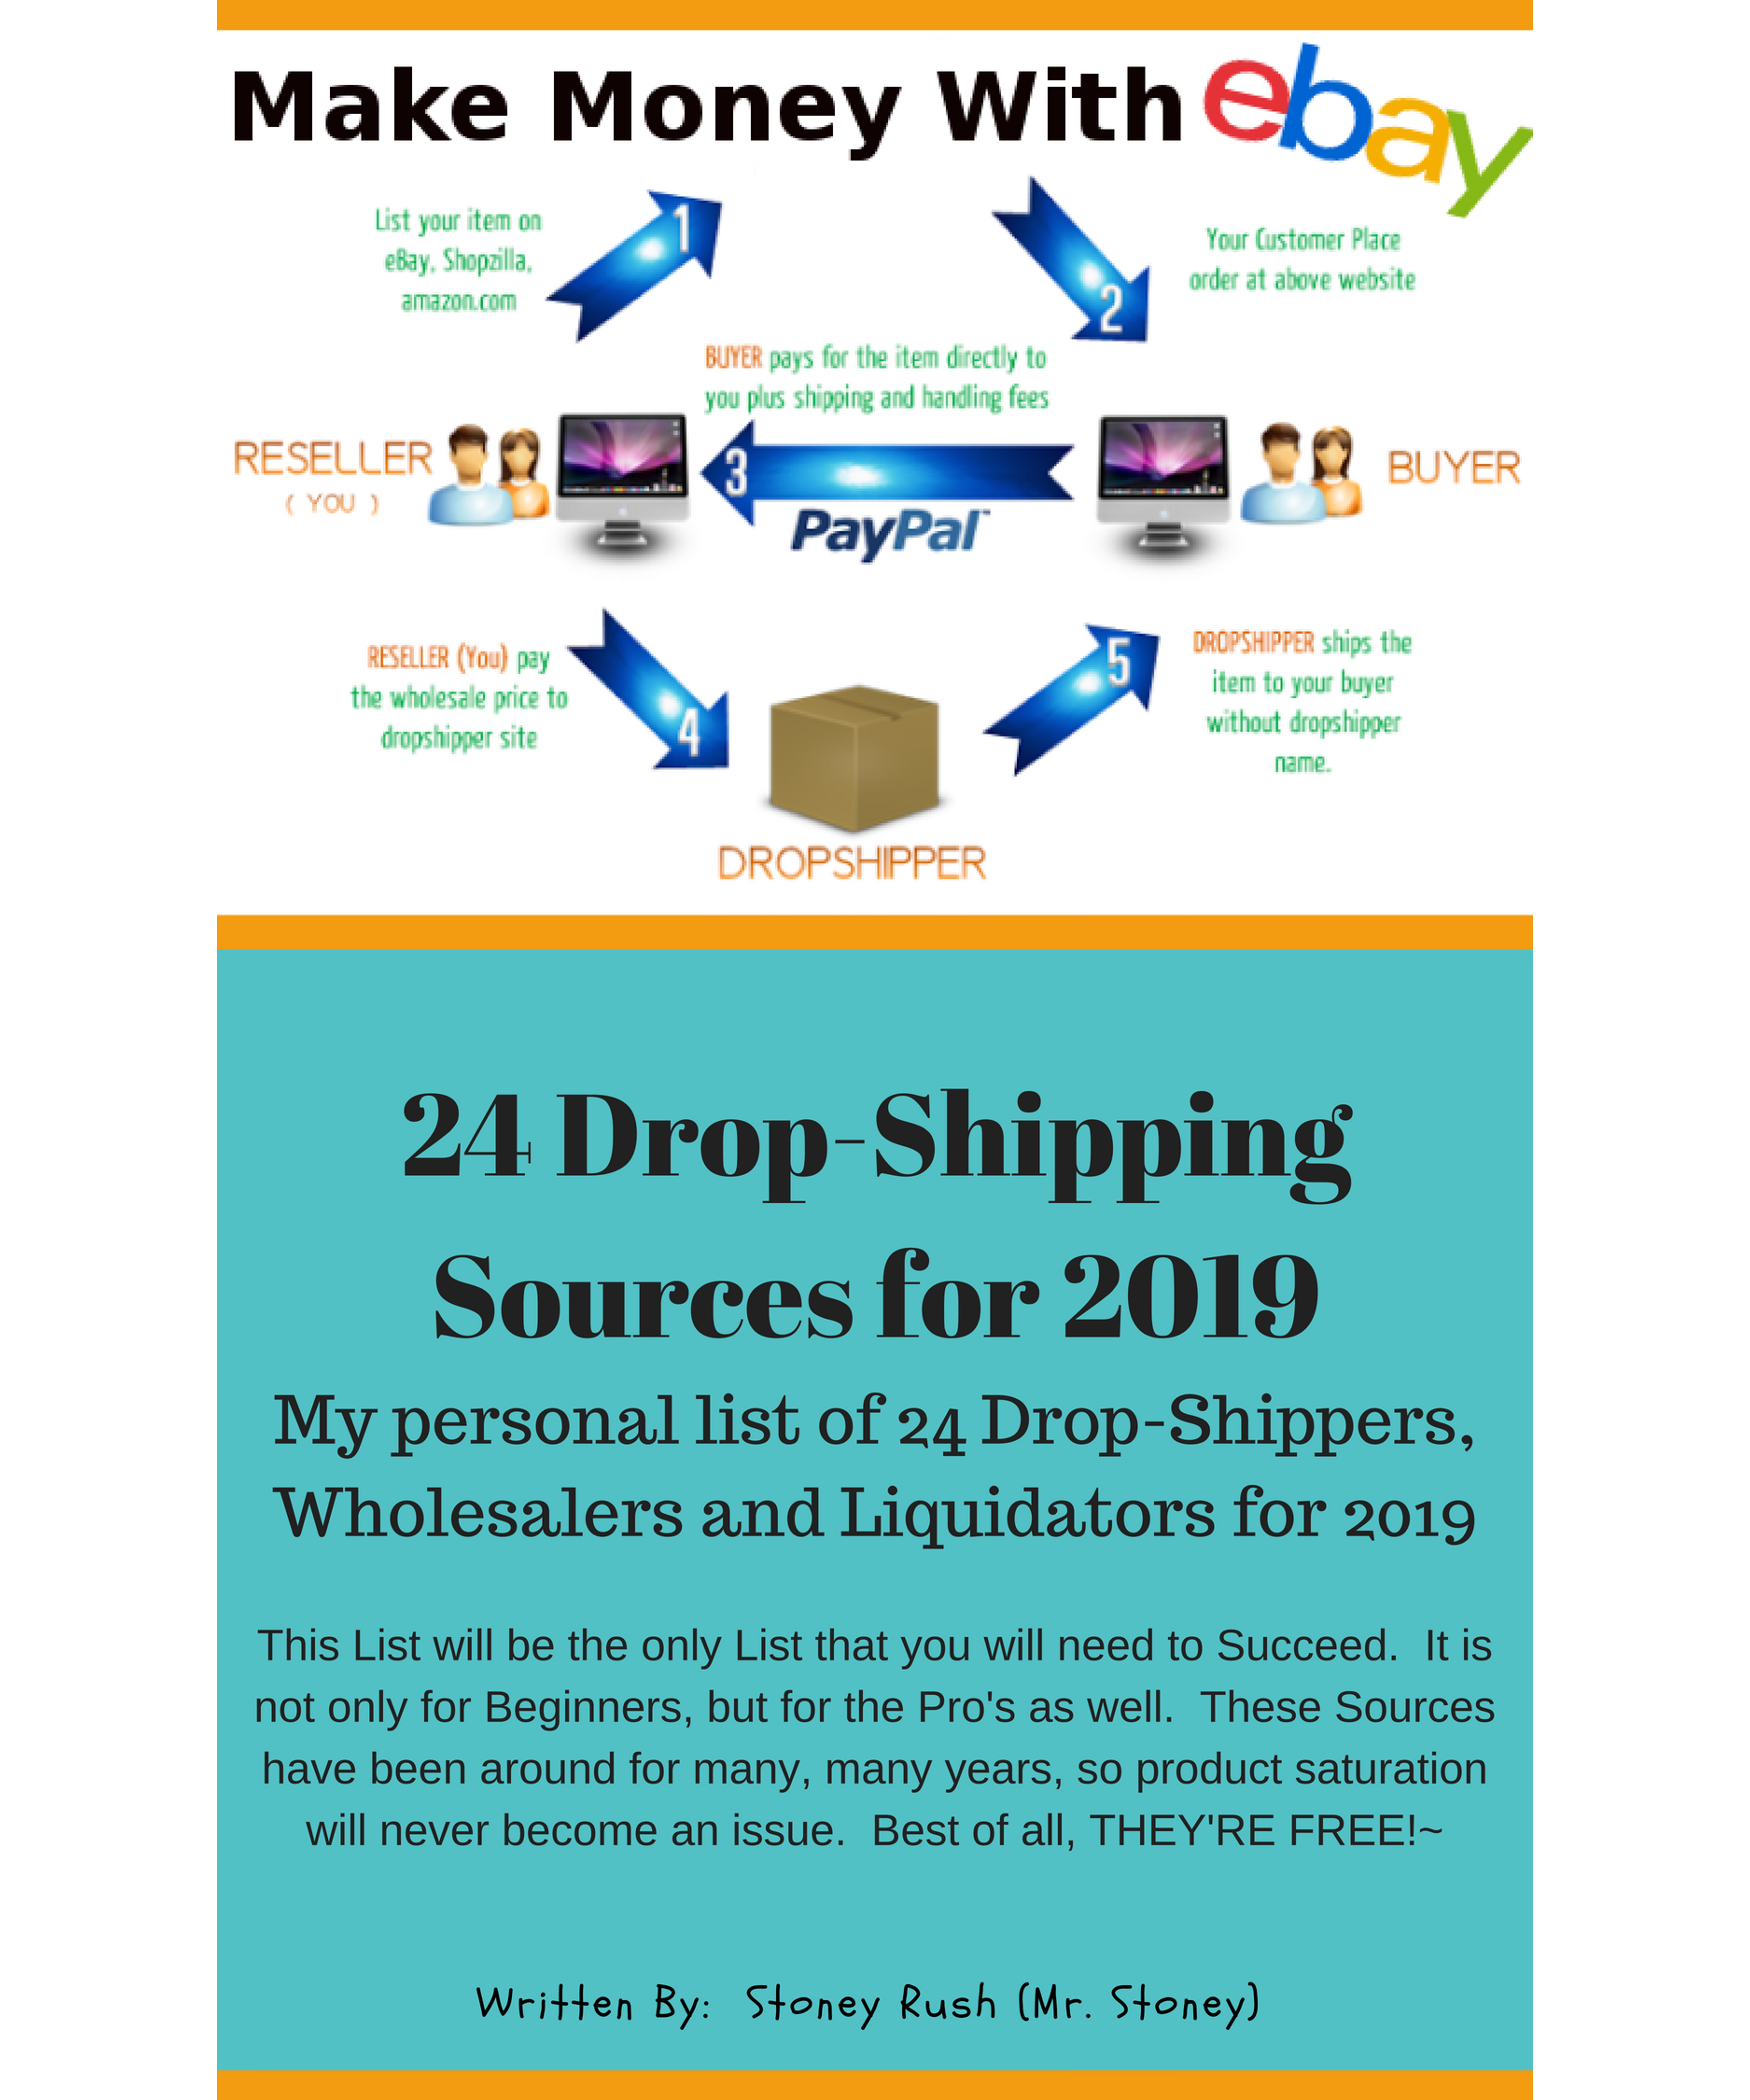 Make Money With Ebay Dropshipping Sources Money Munchkids